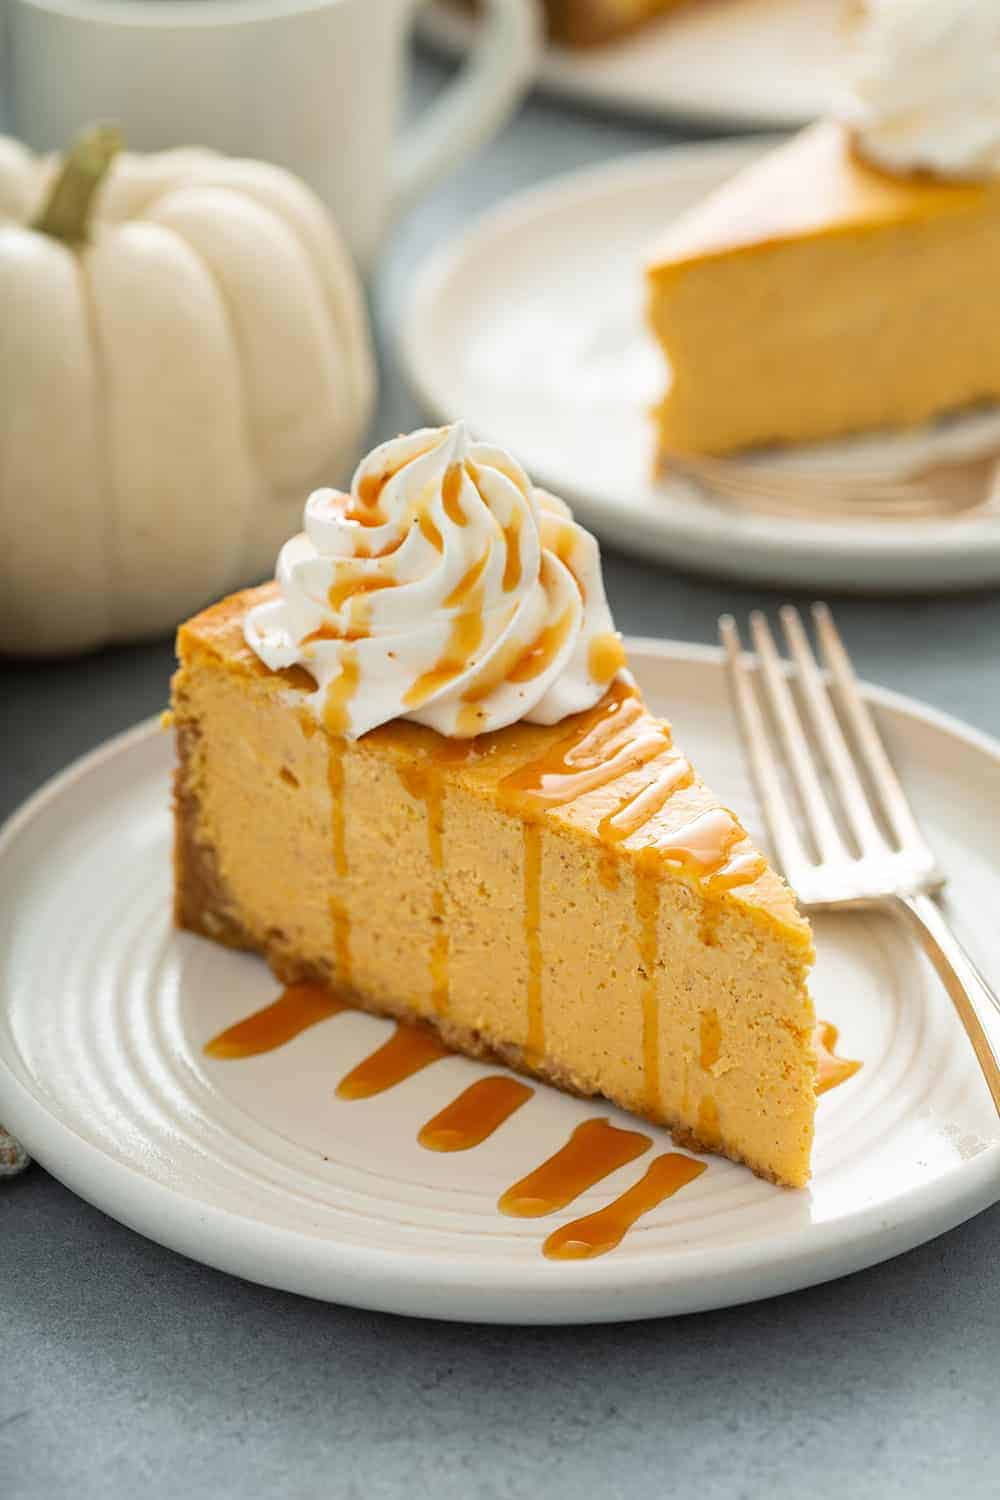 Slice of pumpkin cheesecake next to a fork on a plate